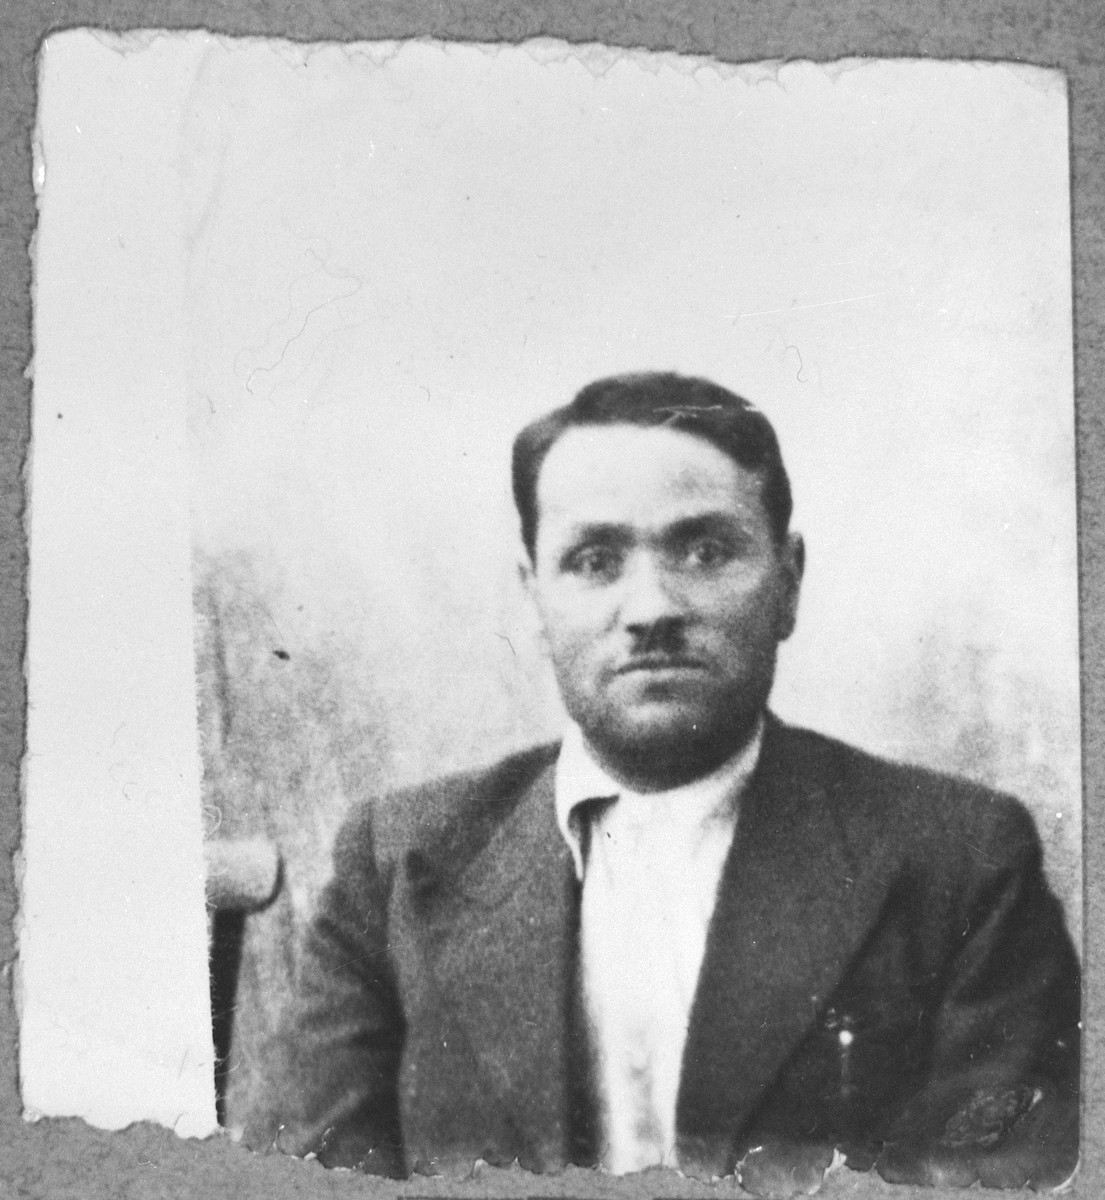 Portrait of Yakov Nissan, son of Avram Nissan.  He was a milkman.  He lived at Ferisovatska 34 in Bitola.